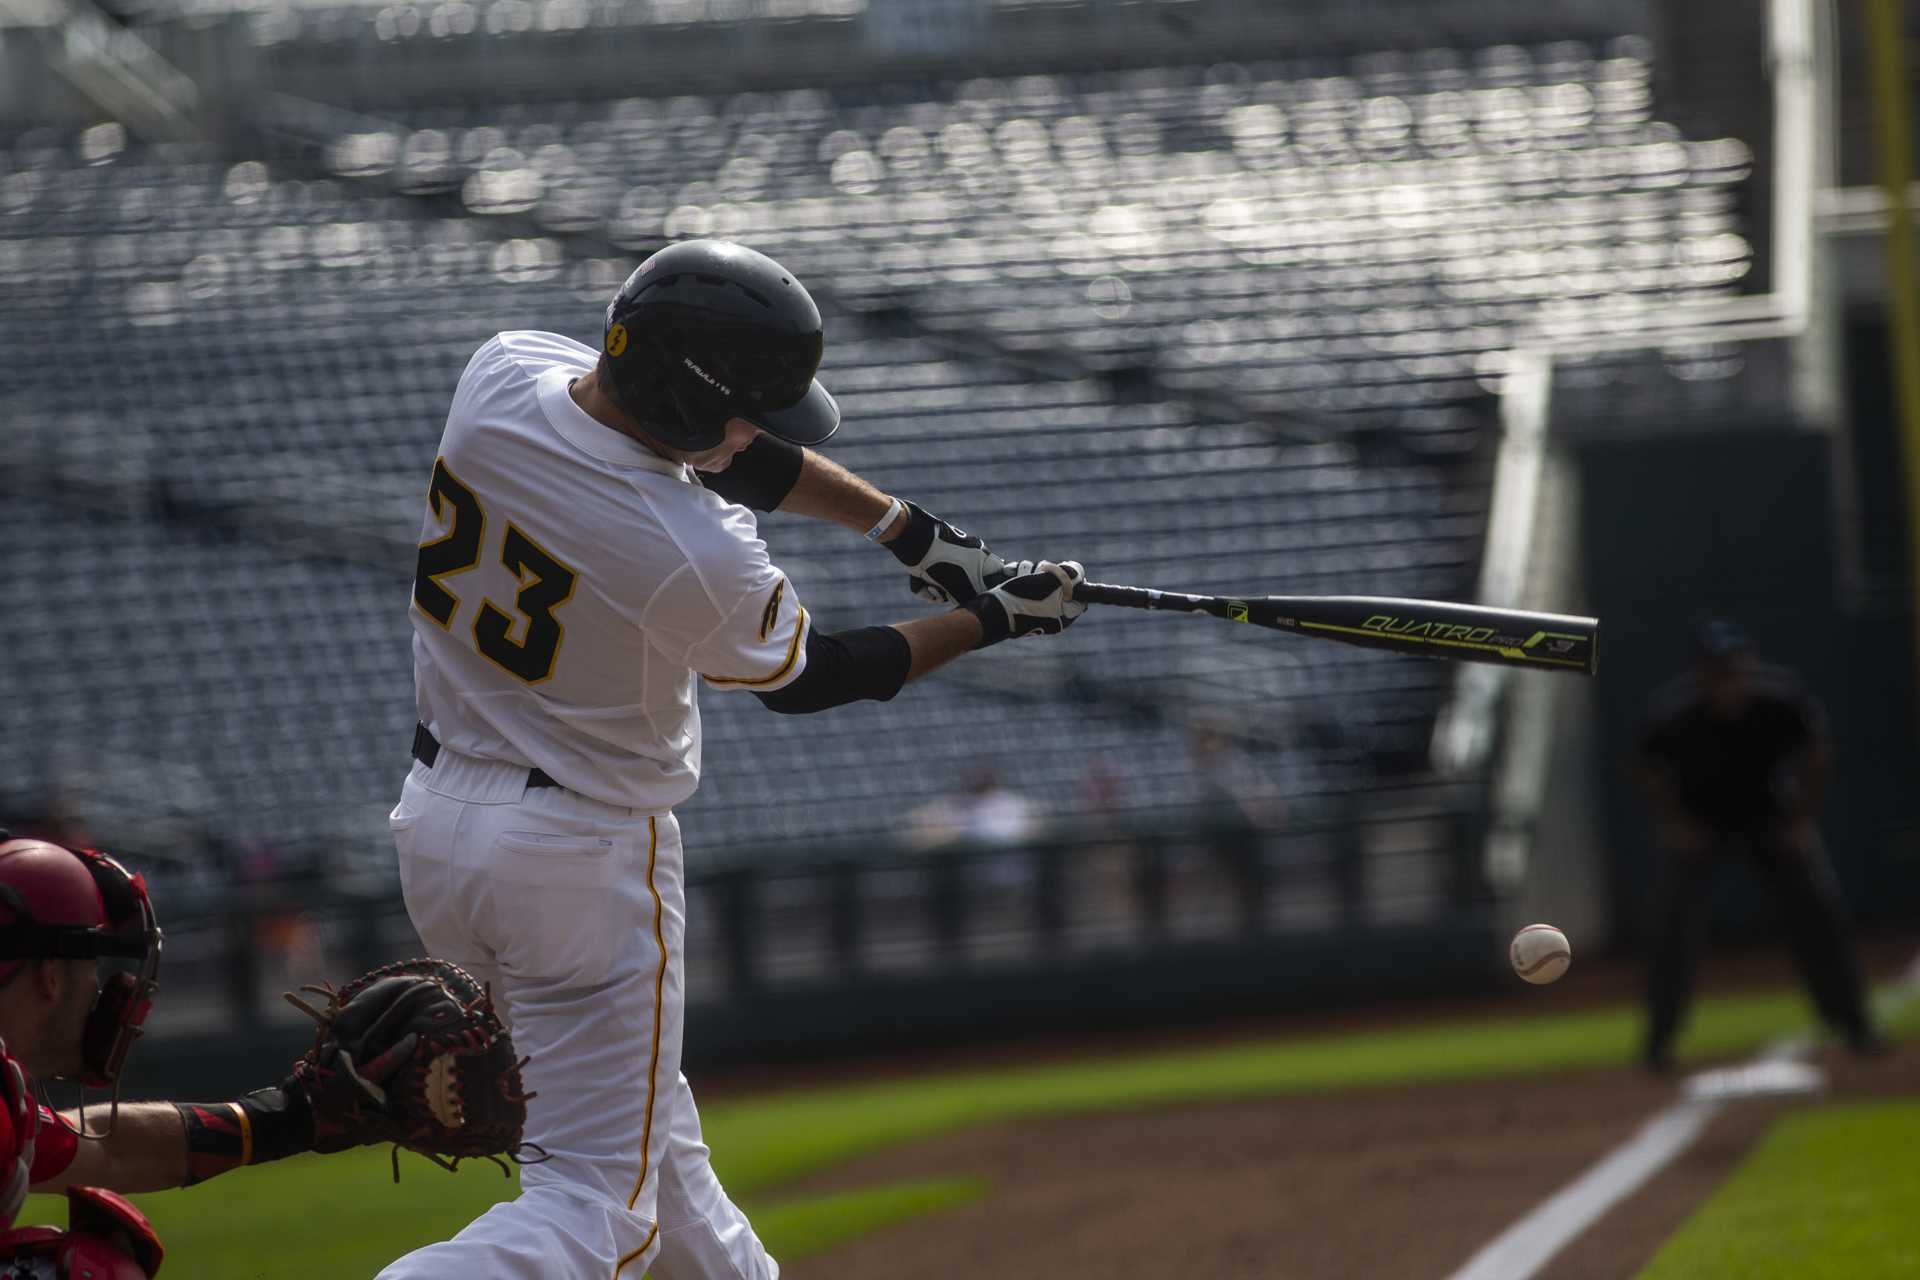 Iowa's Kyle Crowl makes contact during Iowa's Big Ten tournament game against Ohio State on Thursday, May 24, 2018. The Buckeyes defeated the Hawkeyes 2-0. (Nick Rohlman/The Daily Iowan)